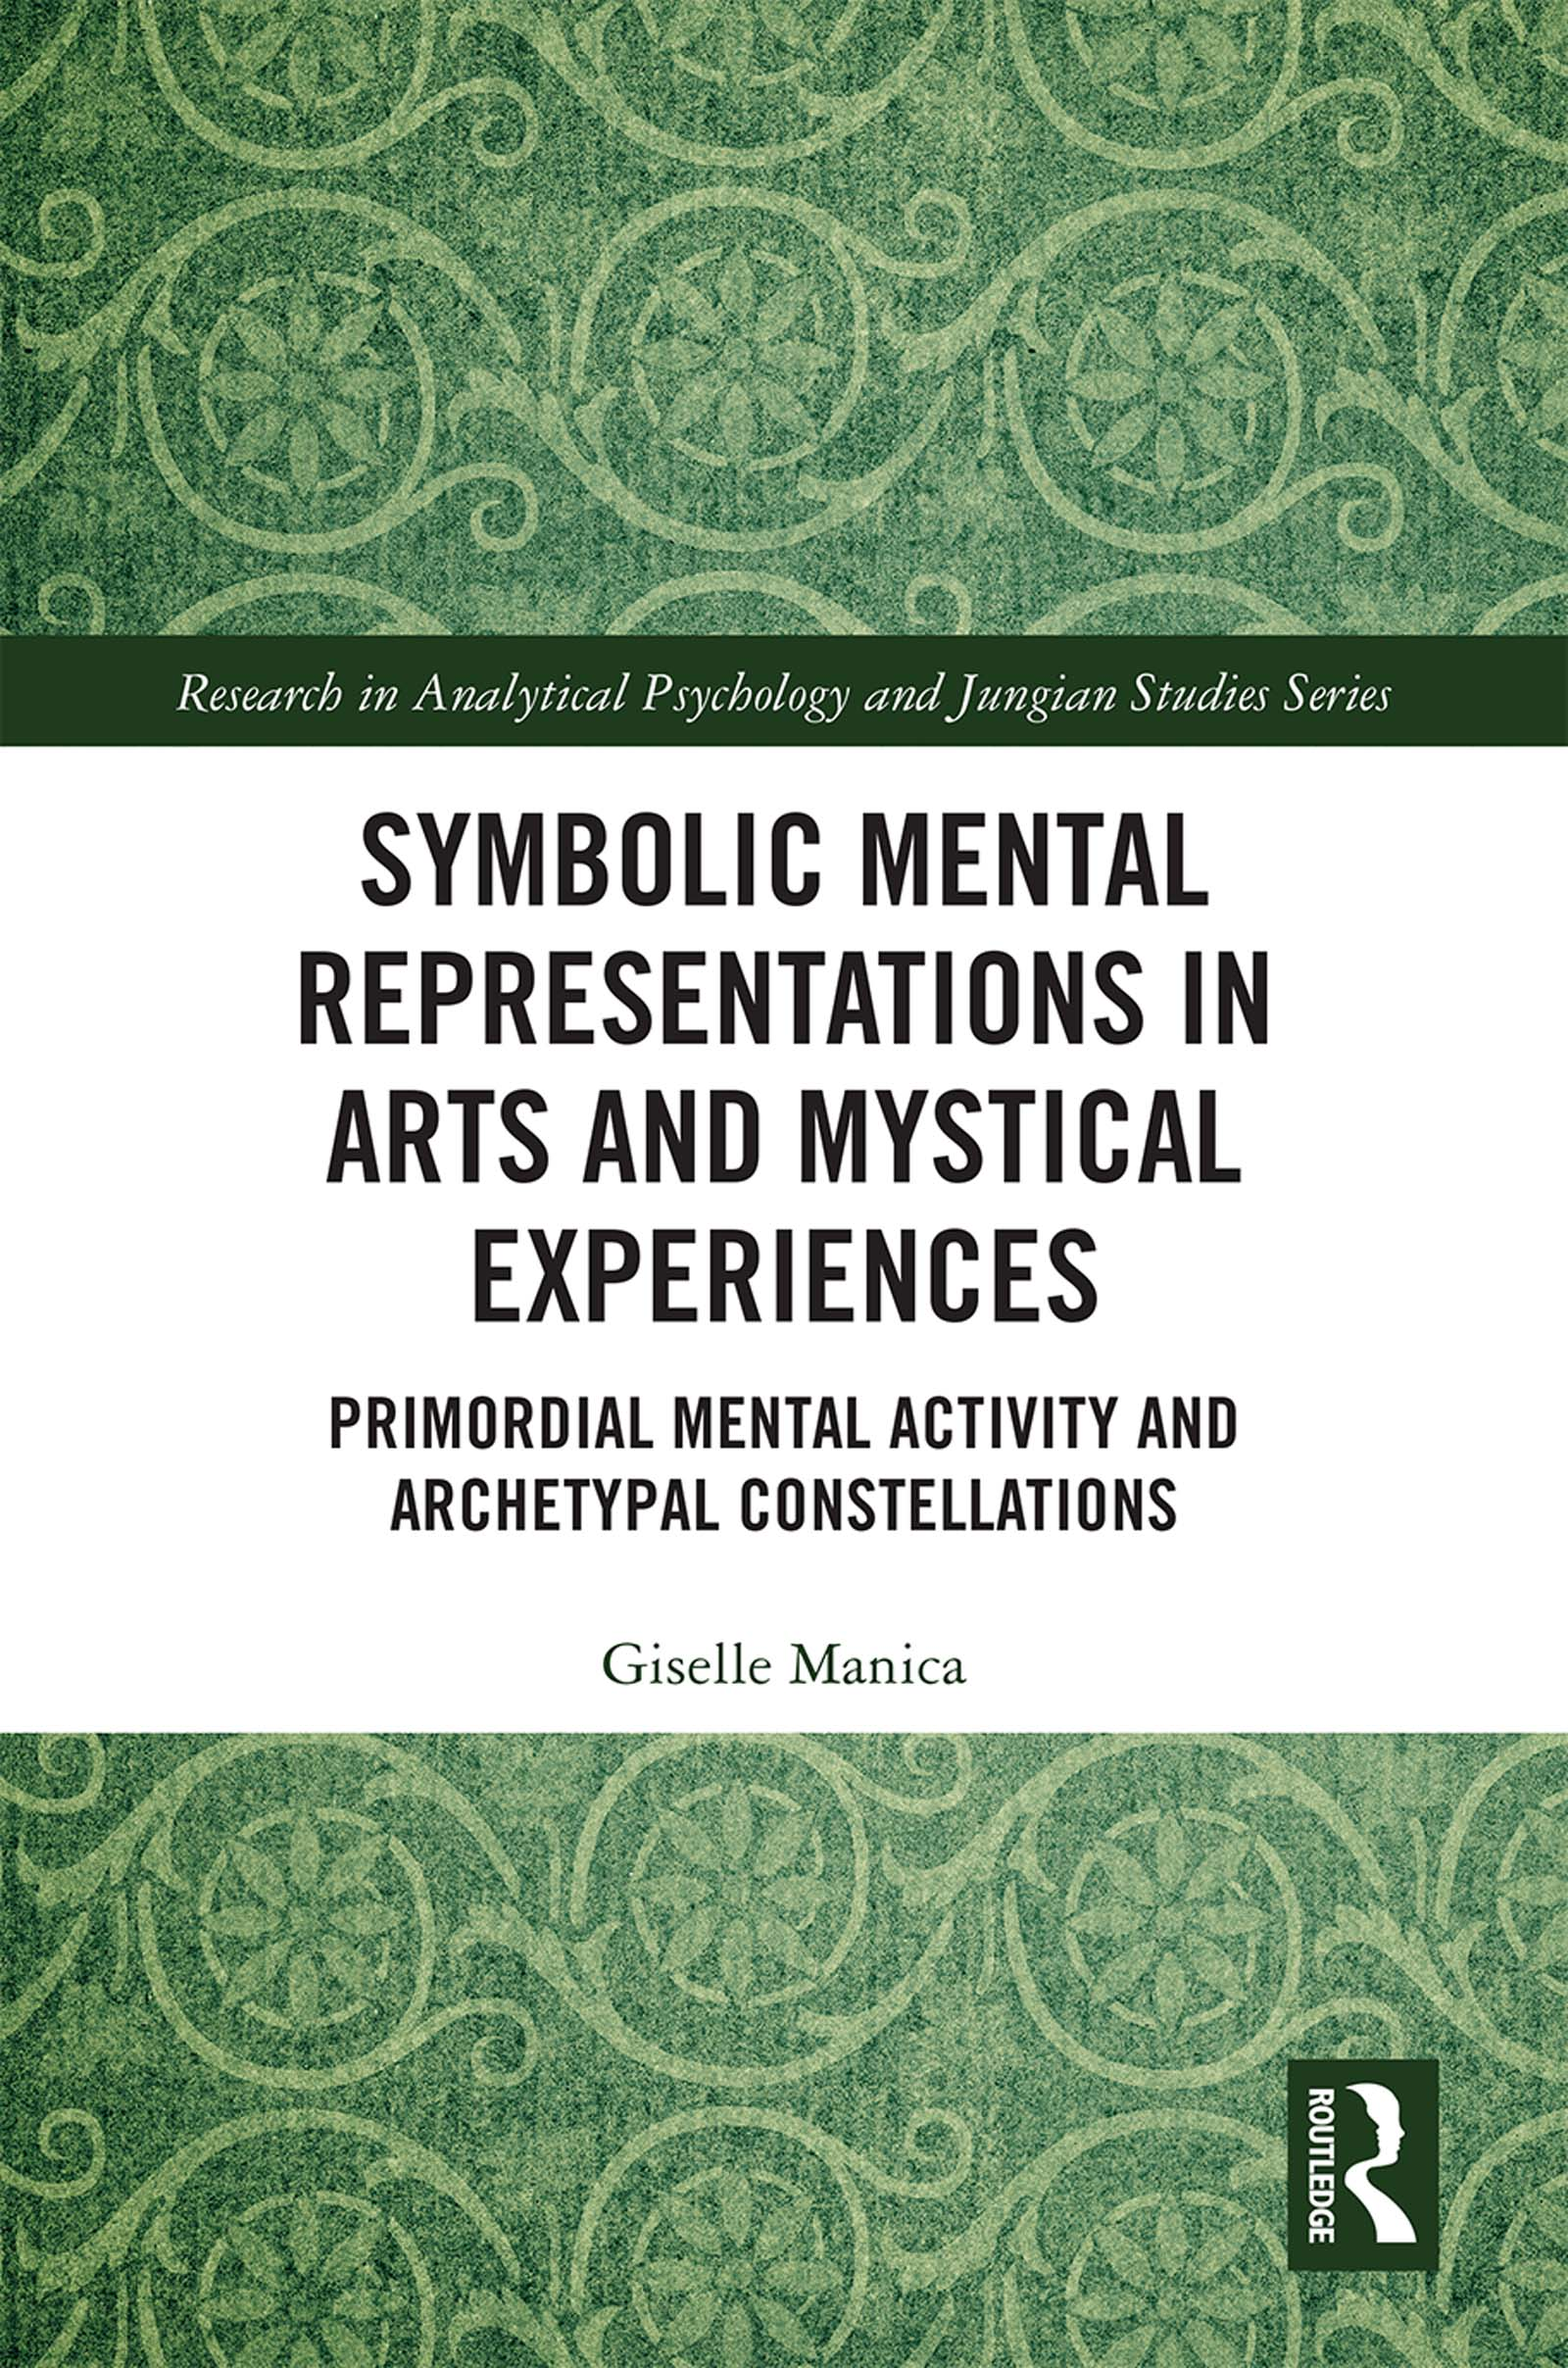 Symbolic Mental Representations in Arts and Mystical Experiences